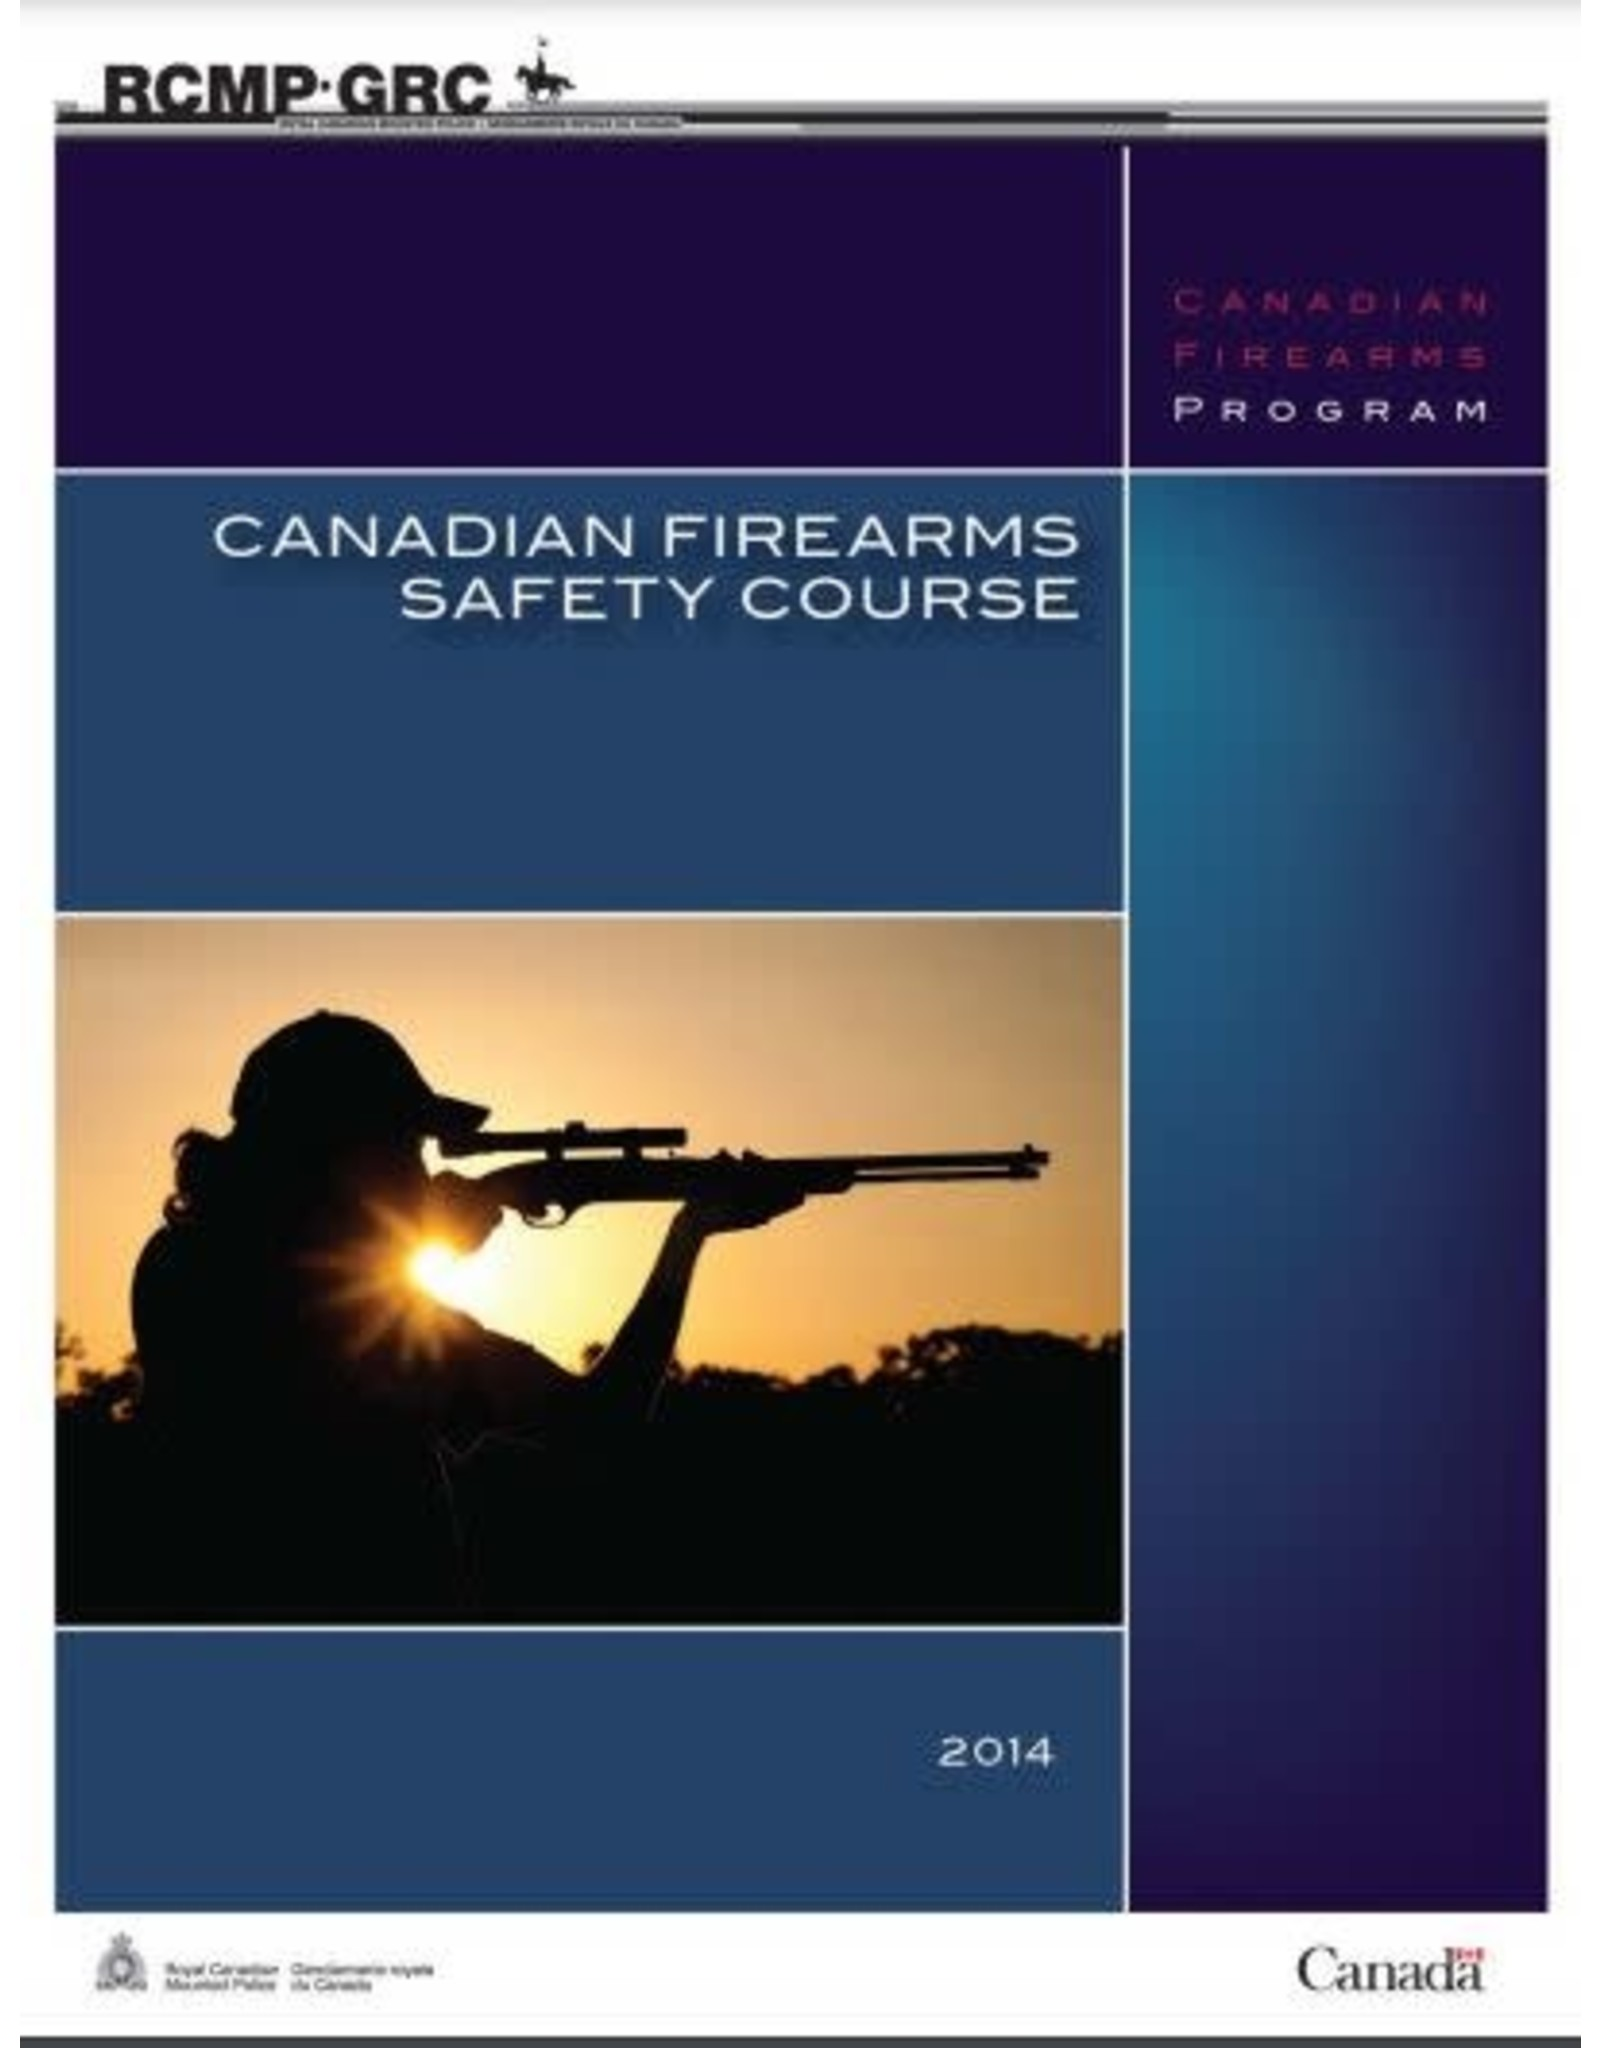 CANADIAN FIREARMS SAFETY COURSE BOOK